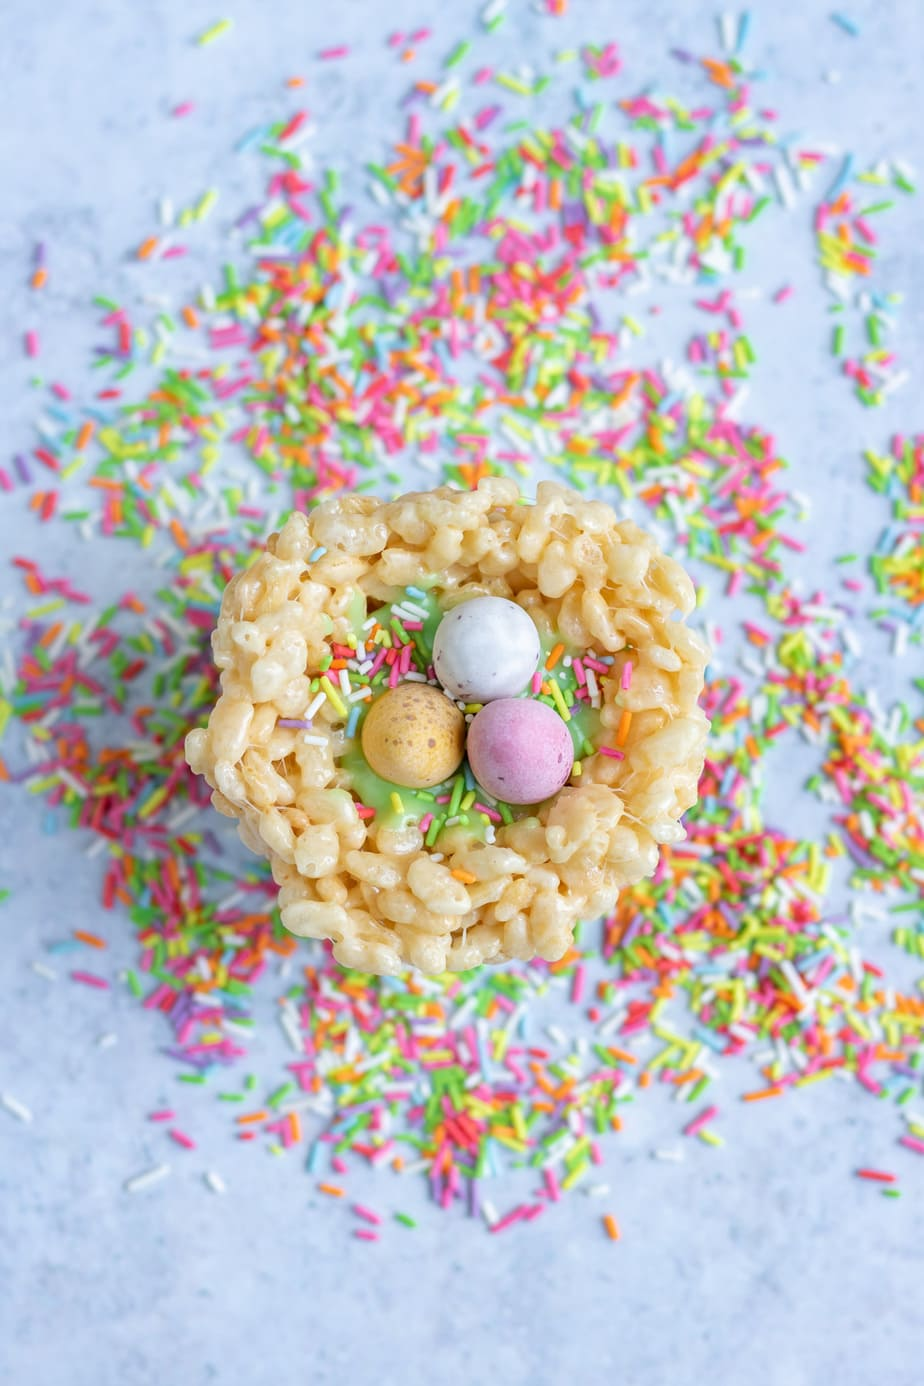 Single rice krispie nest with sprinkles scattered around.